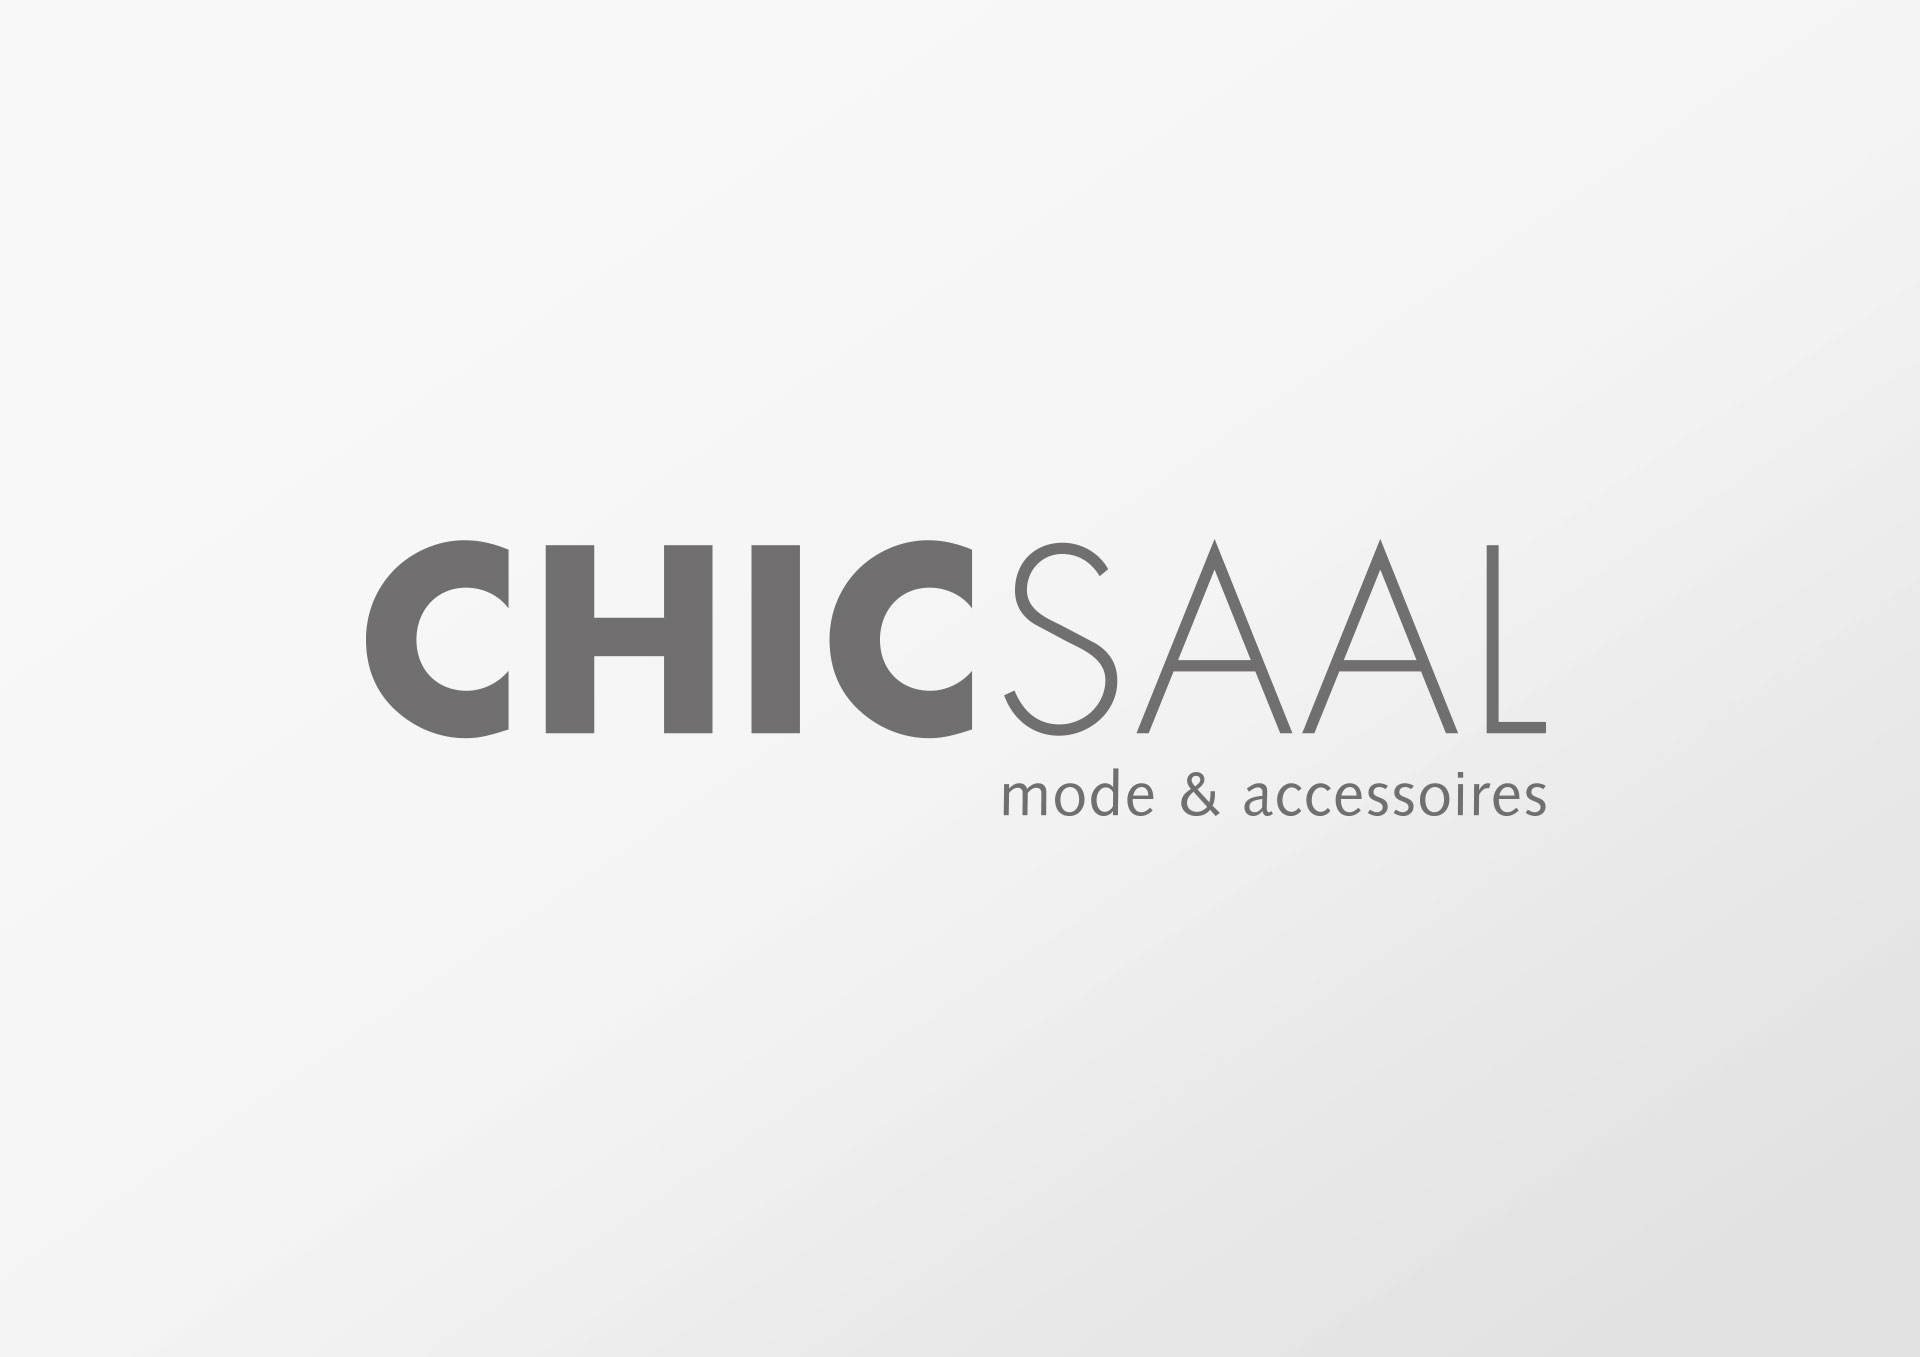 CHICSAAL mode & accessoires